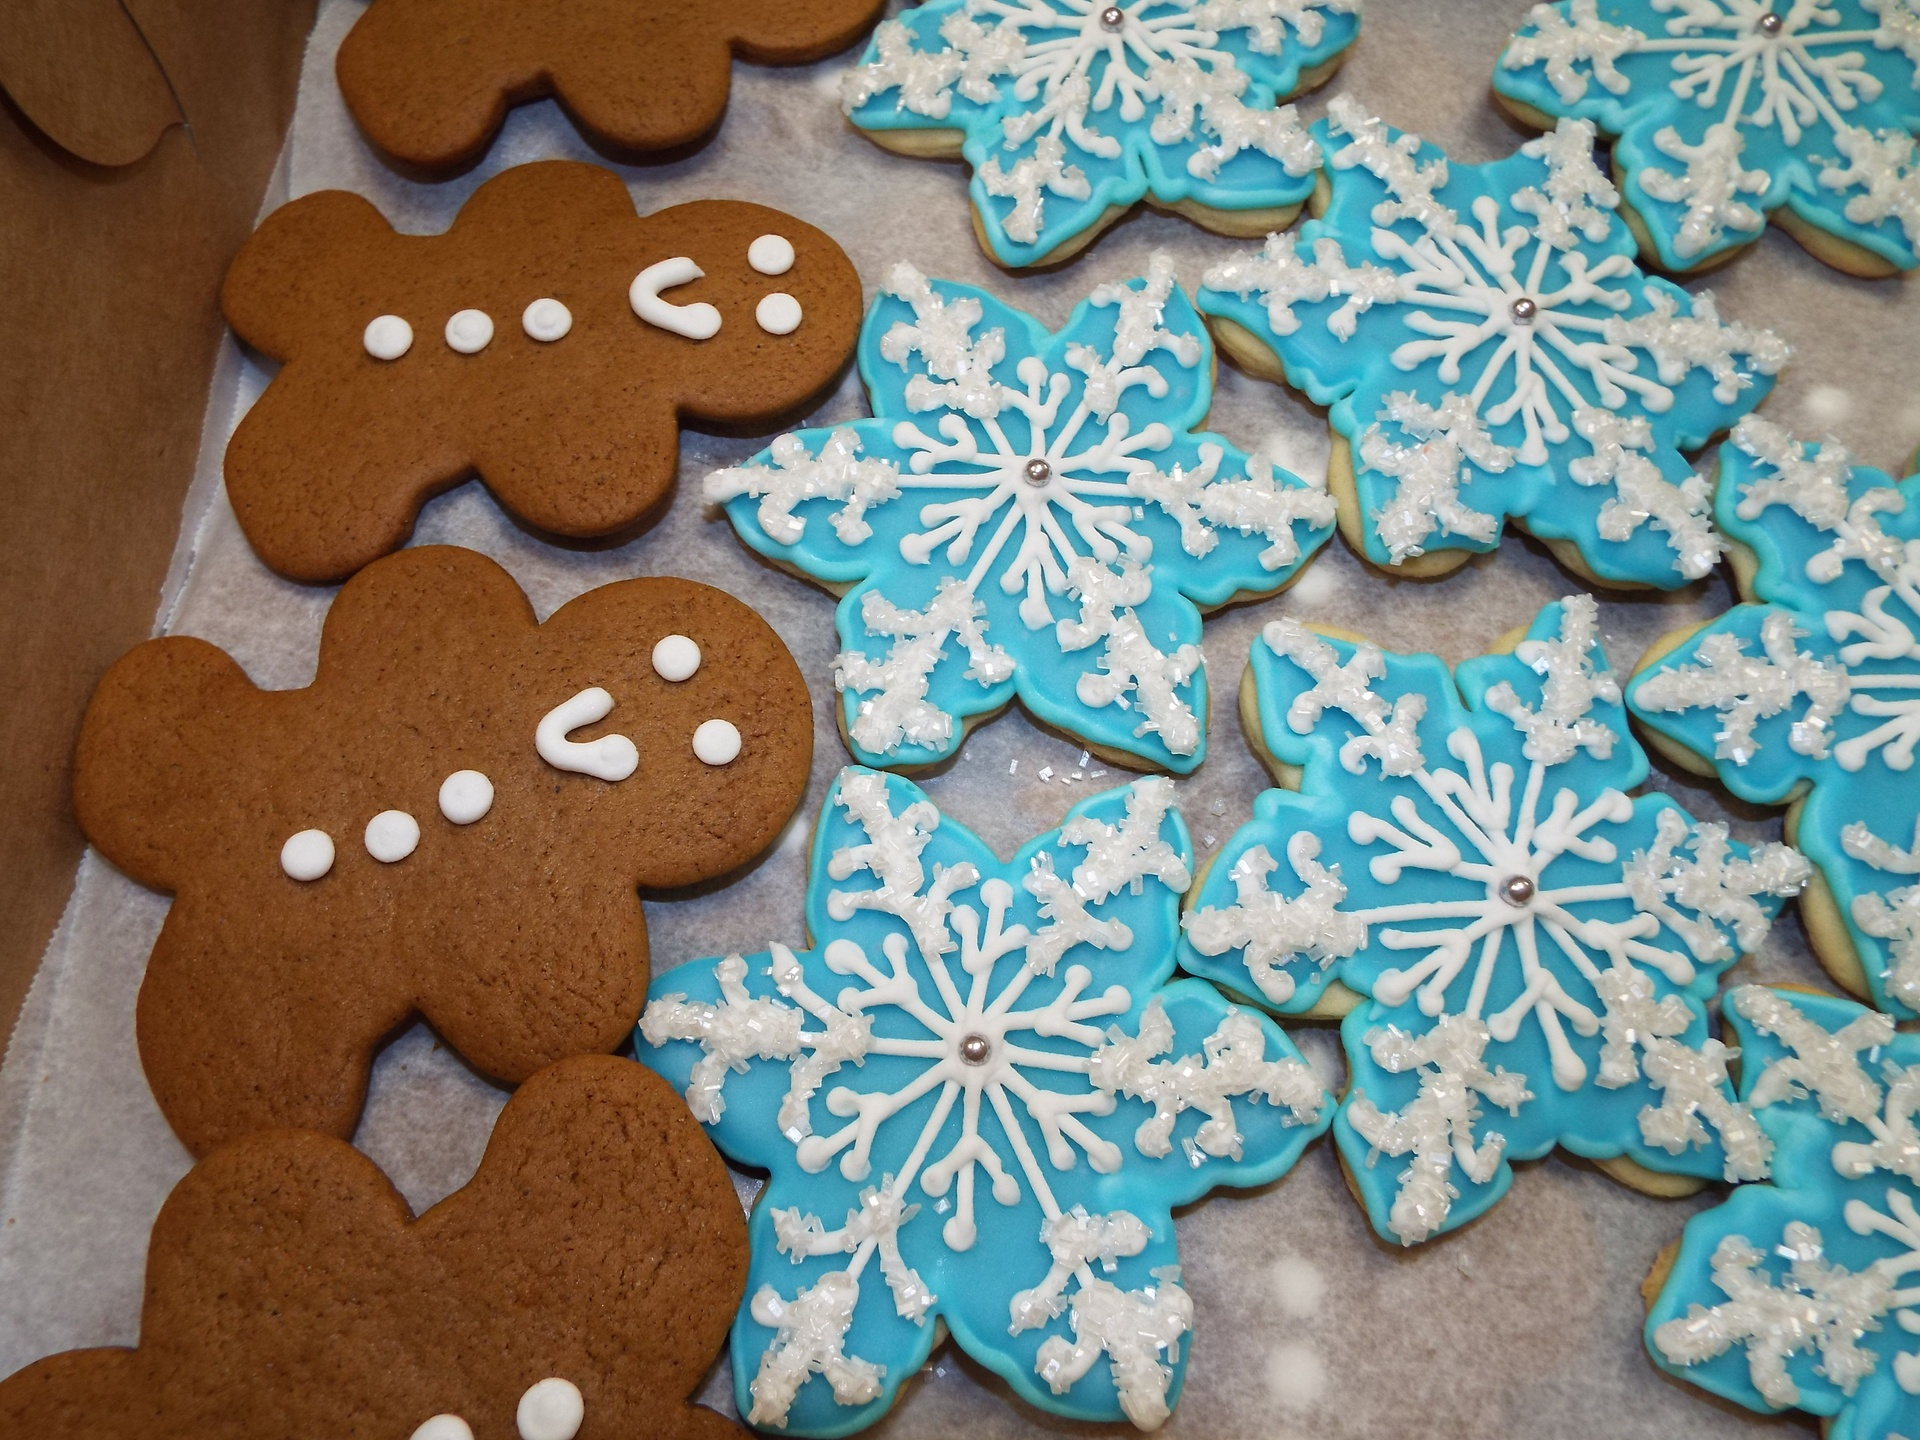 gingerbread men $1.50 each, snowflakes $3.50 each